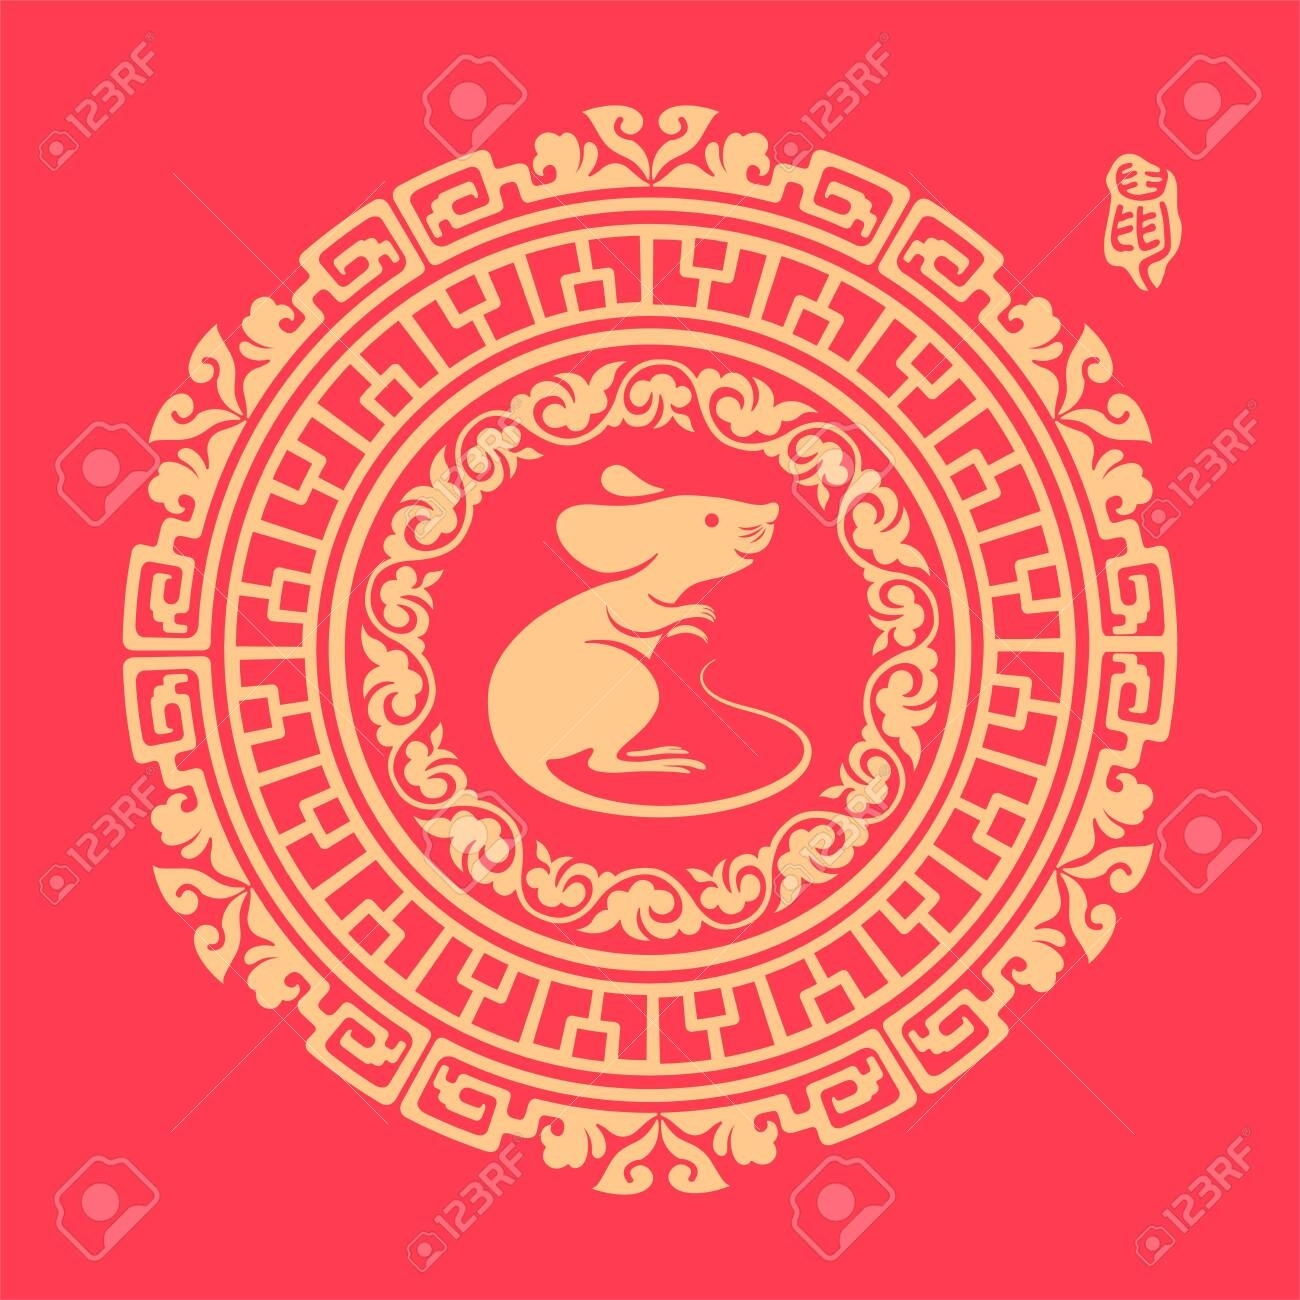 Design Element Of Chinese Zodiac Rat - Symbol Of The Year 2020..